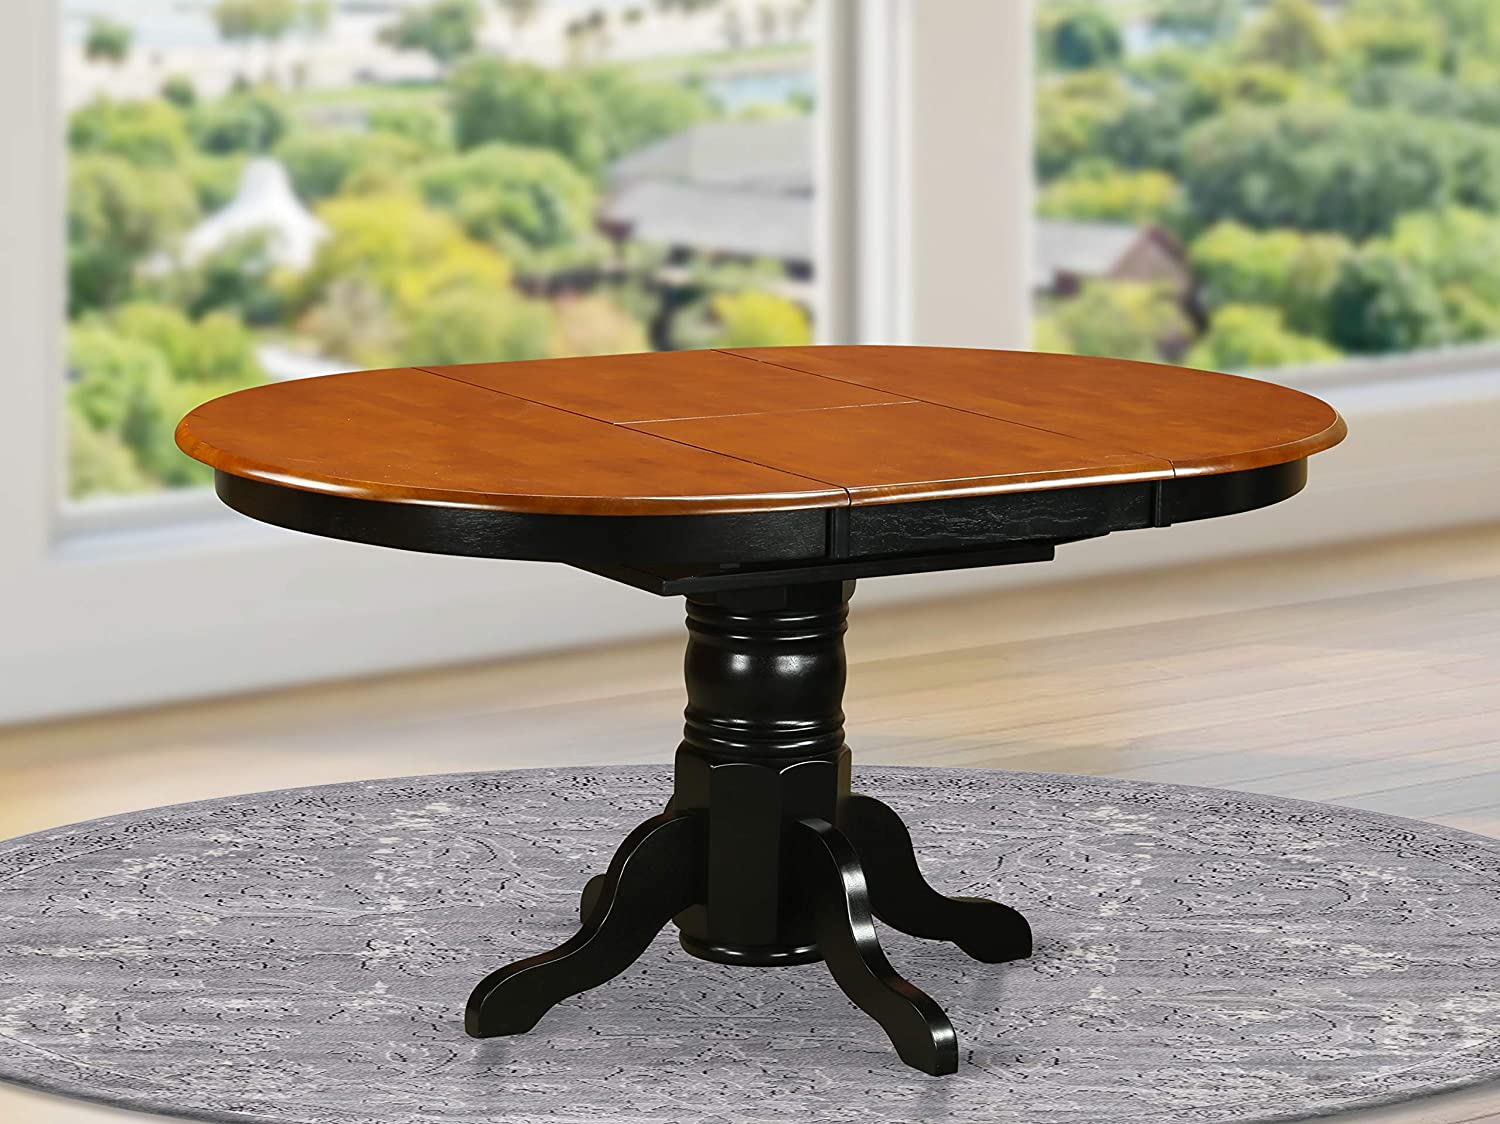 KET-BLK-TP Oval a Pedestal Oval Dining Table 42 x60 with 18 Butterfly Leaf